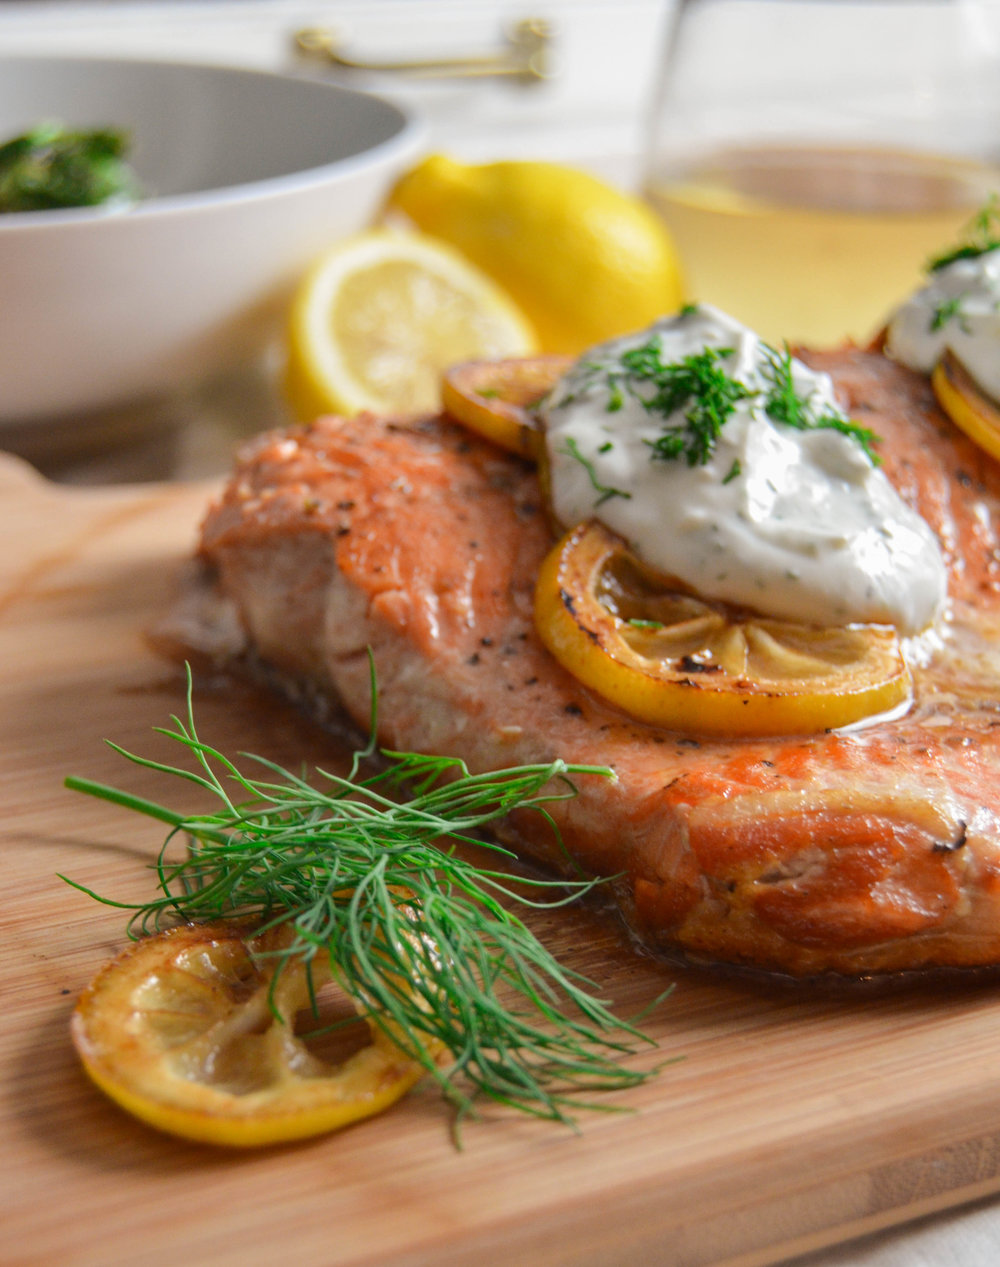 Seared Salmon with Creamy Dill Sauce (7 of 1).jpg